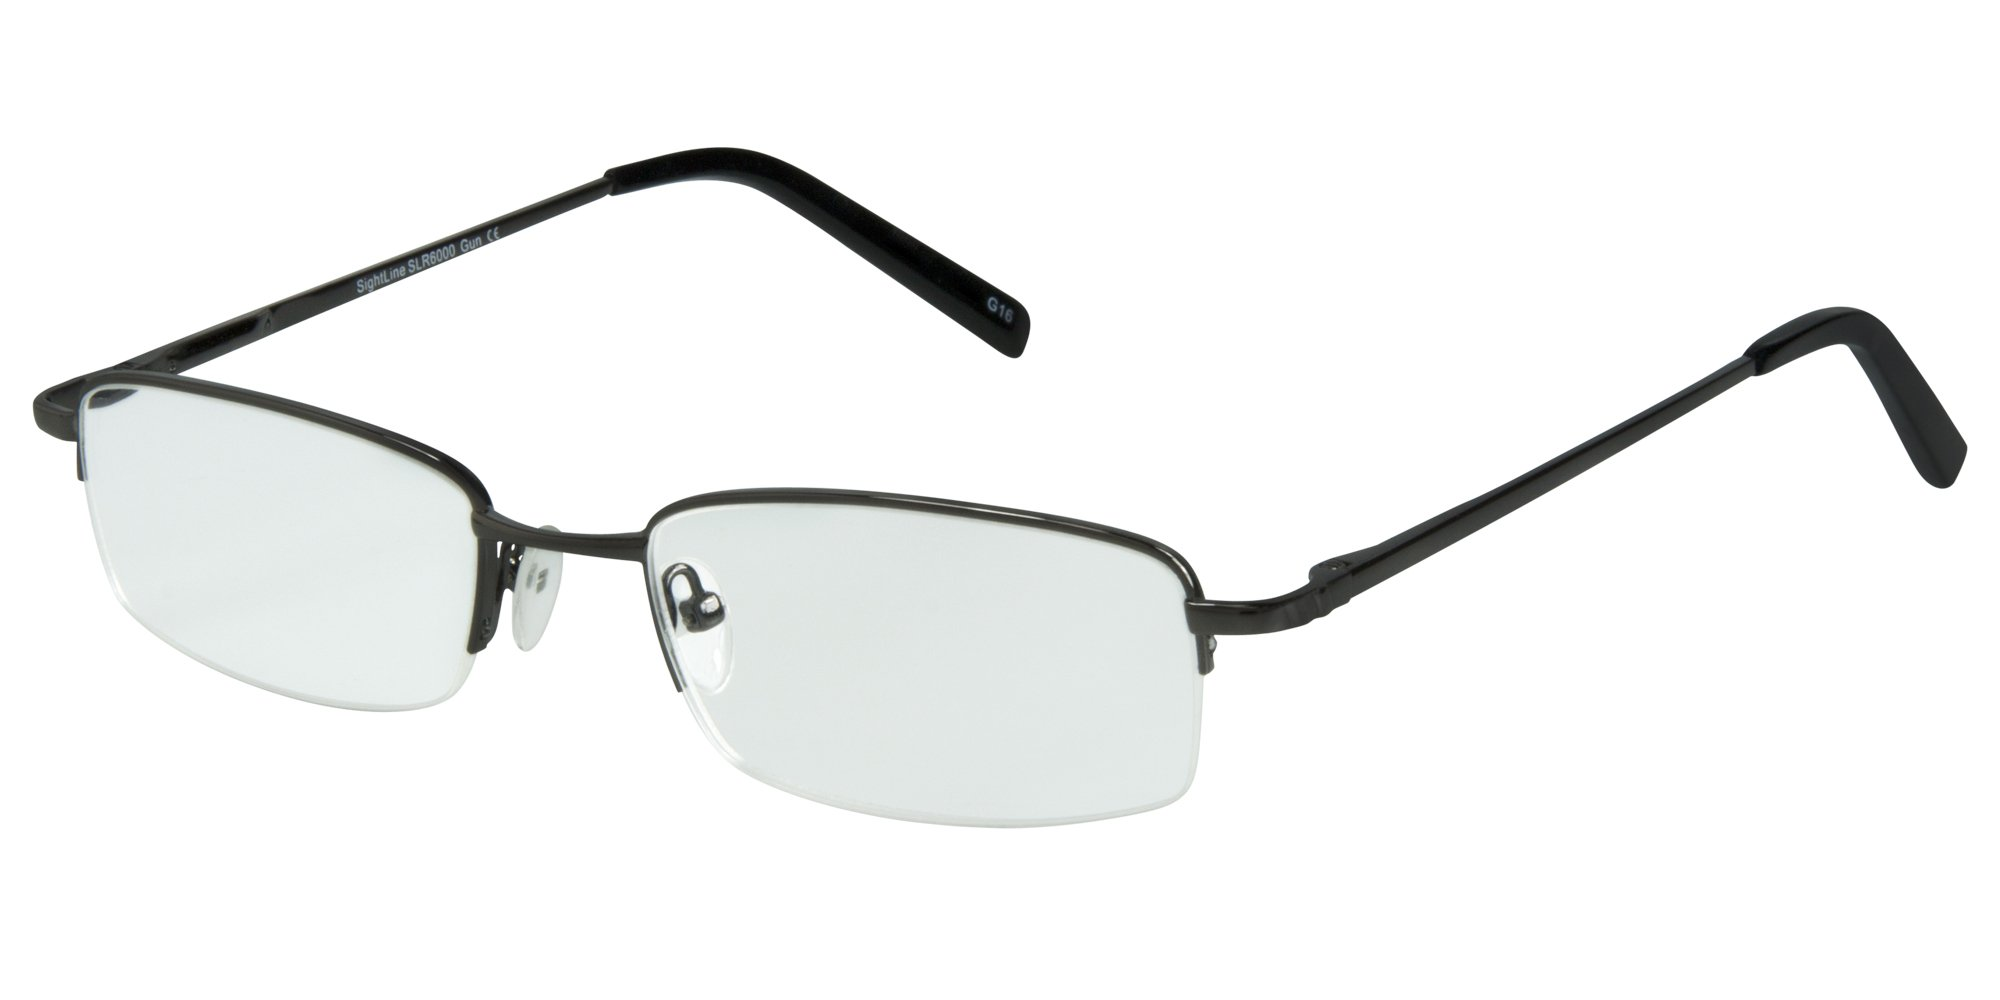 SightLine Multifocal Computer Reading Glasses 6000 Semi-Rimless Designer Frames (1.50, Gunmetal)